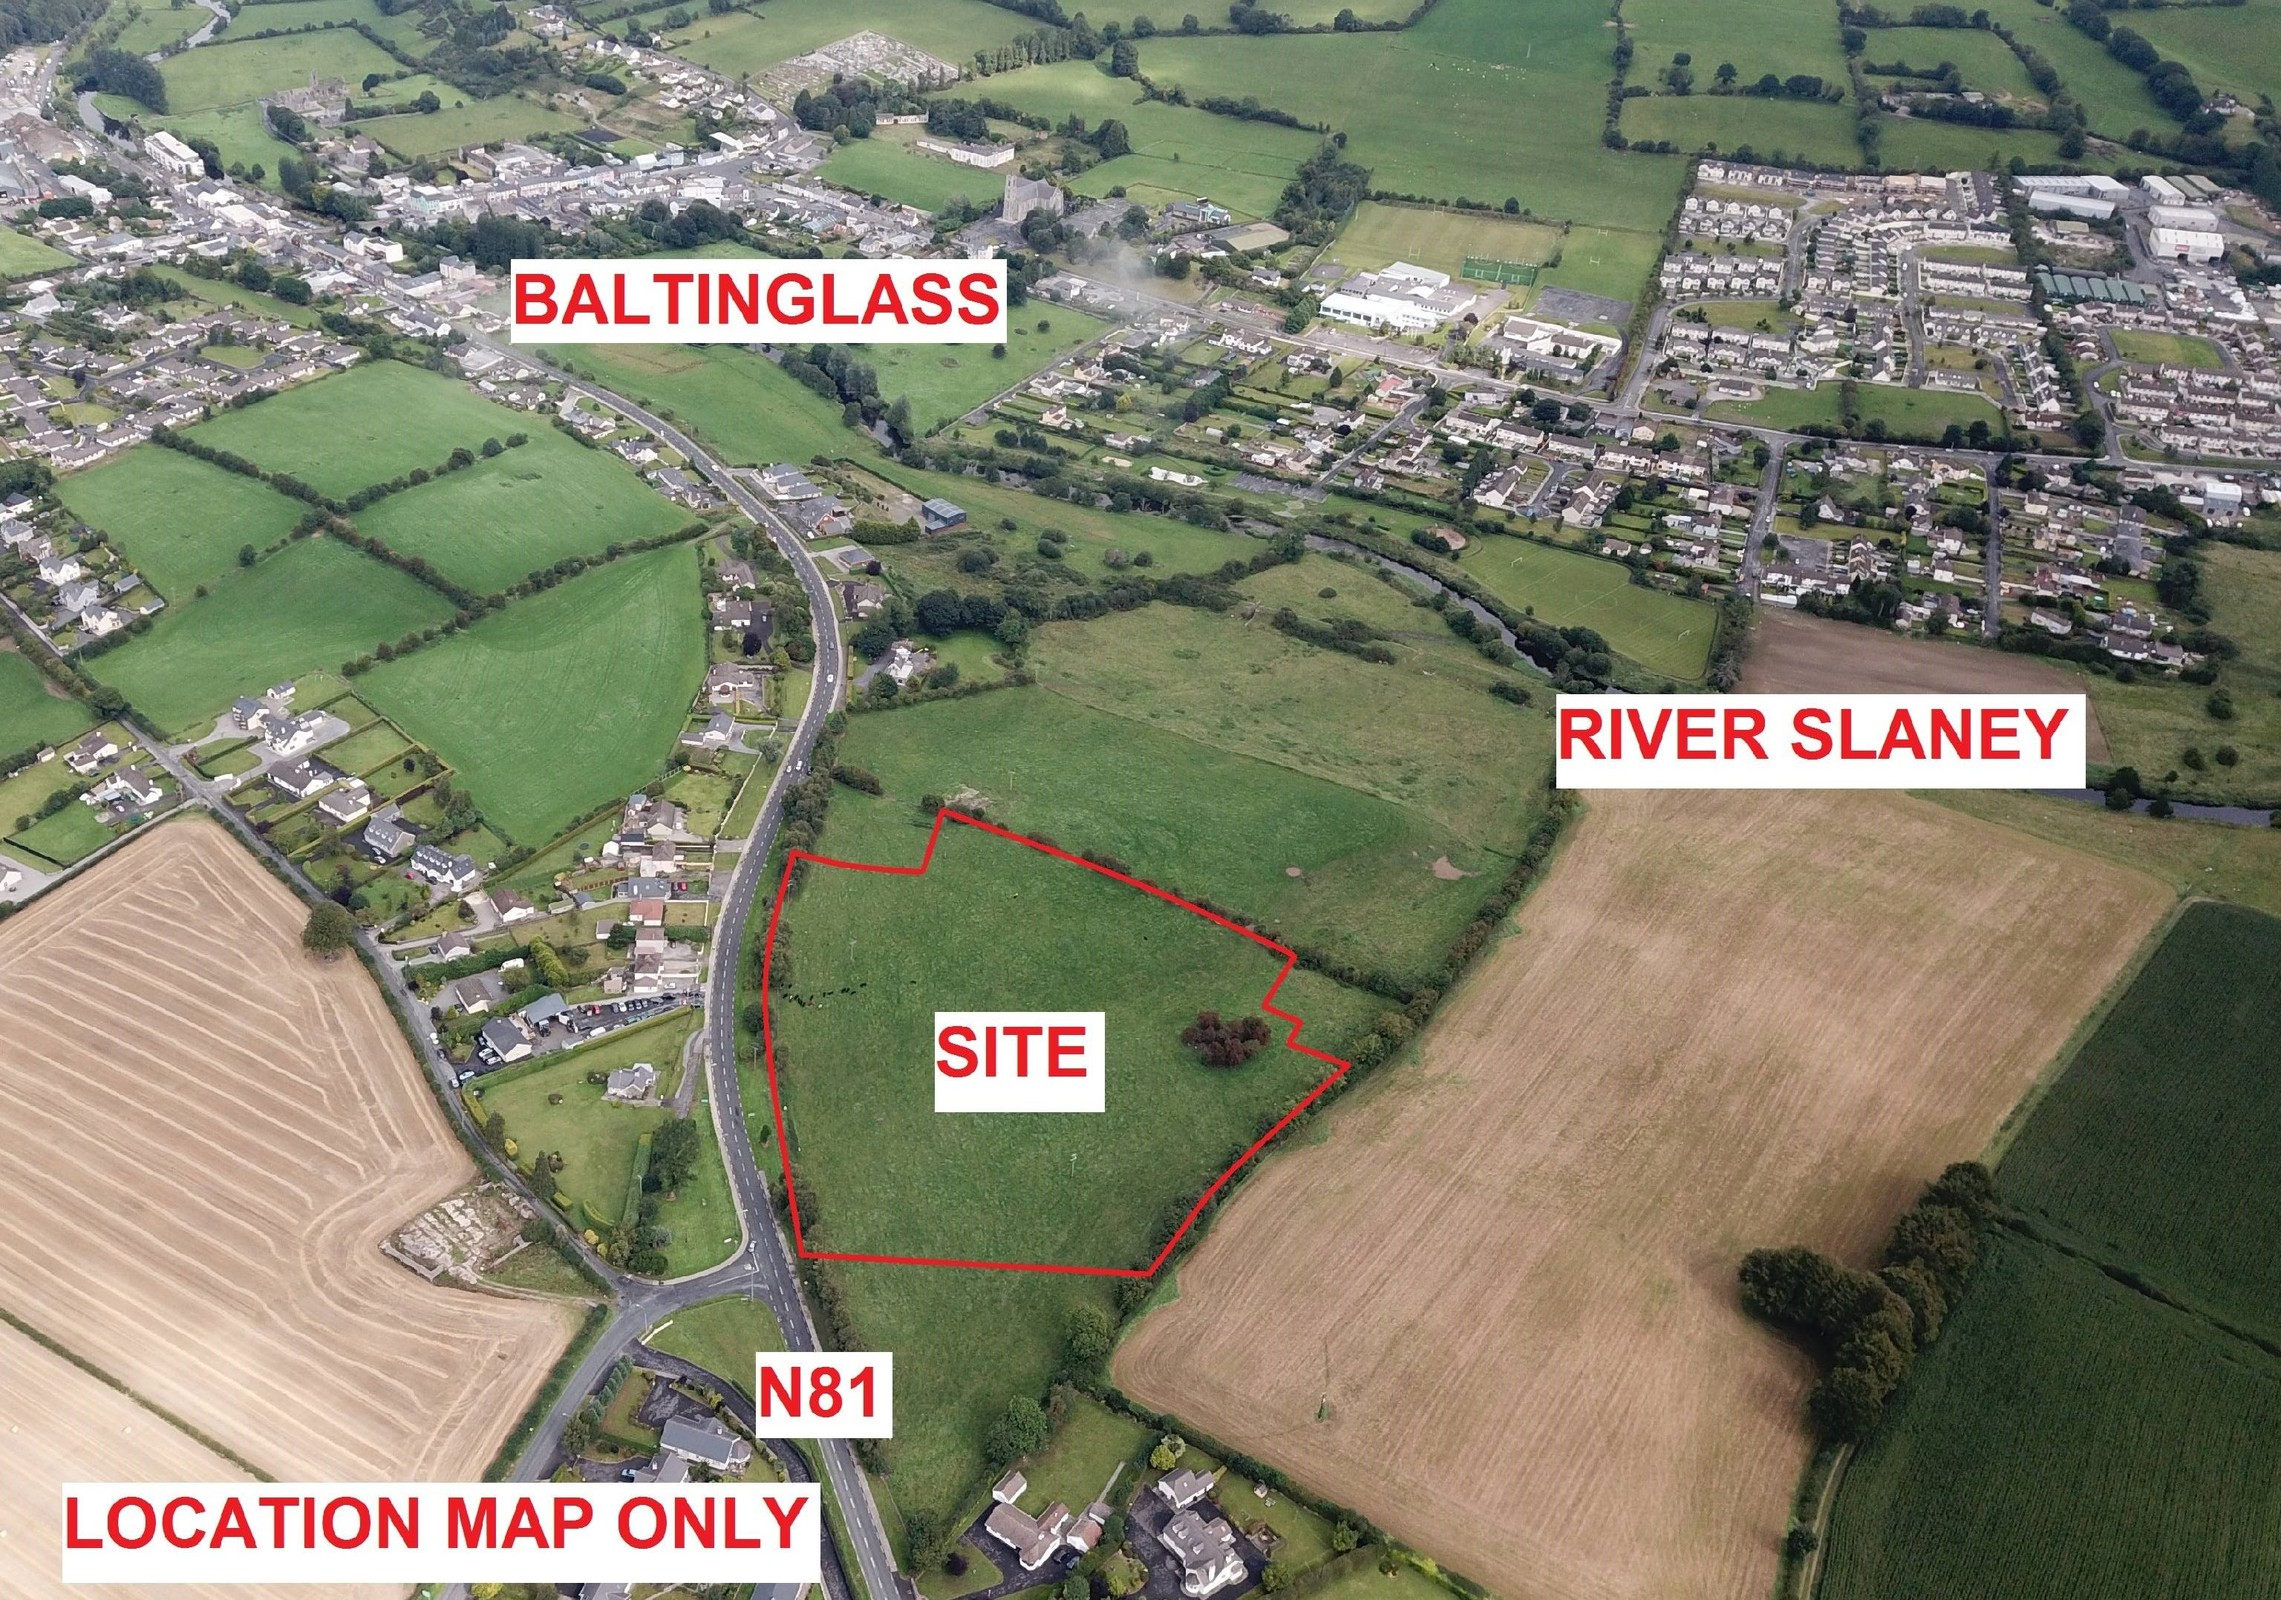 RESIDENTIAL DEVELOPMENT SITE C.9.1 ACRES/3.7 HA WITH FULL PLANNING PERMISSION, Bawnogues, Baltinglas